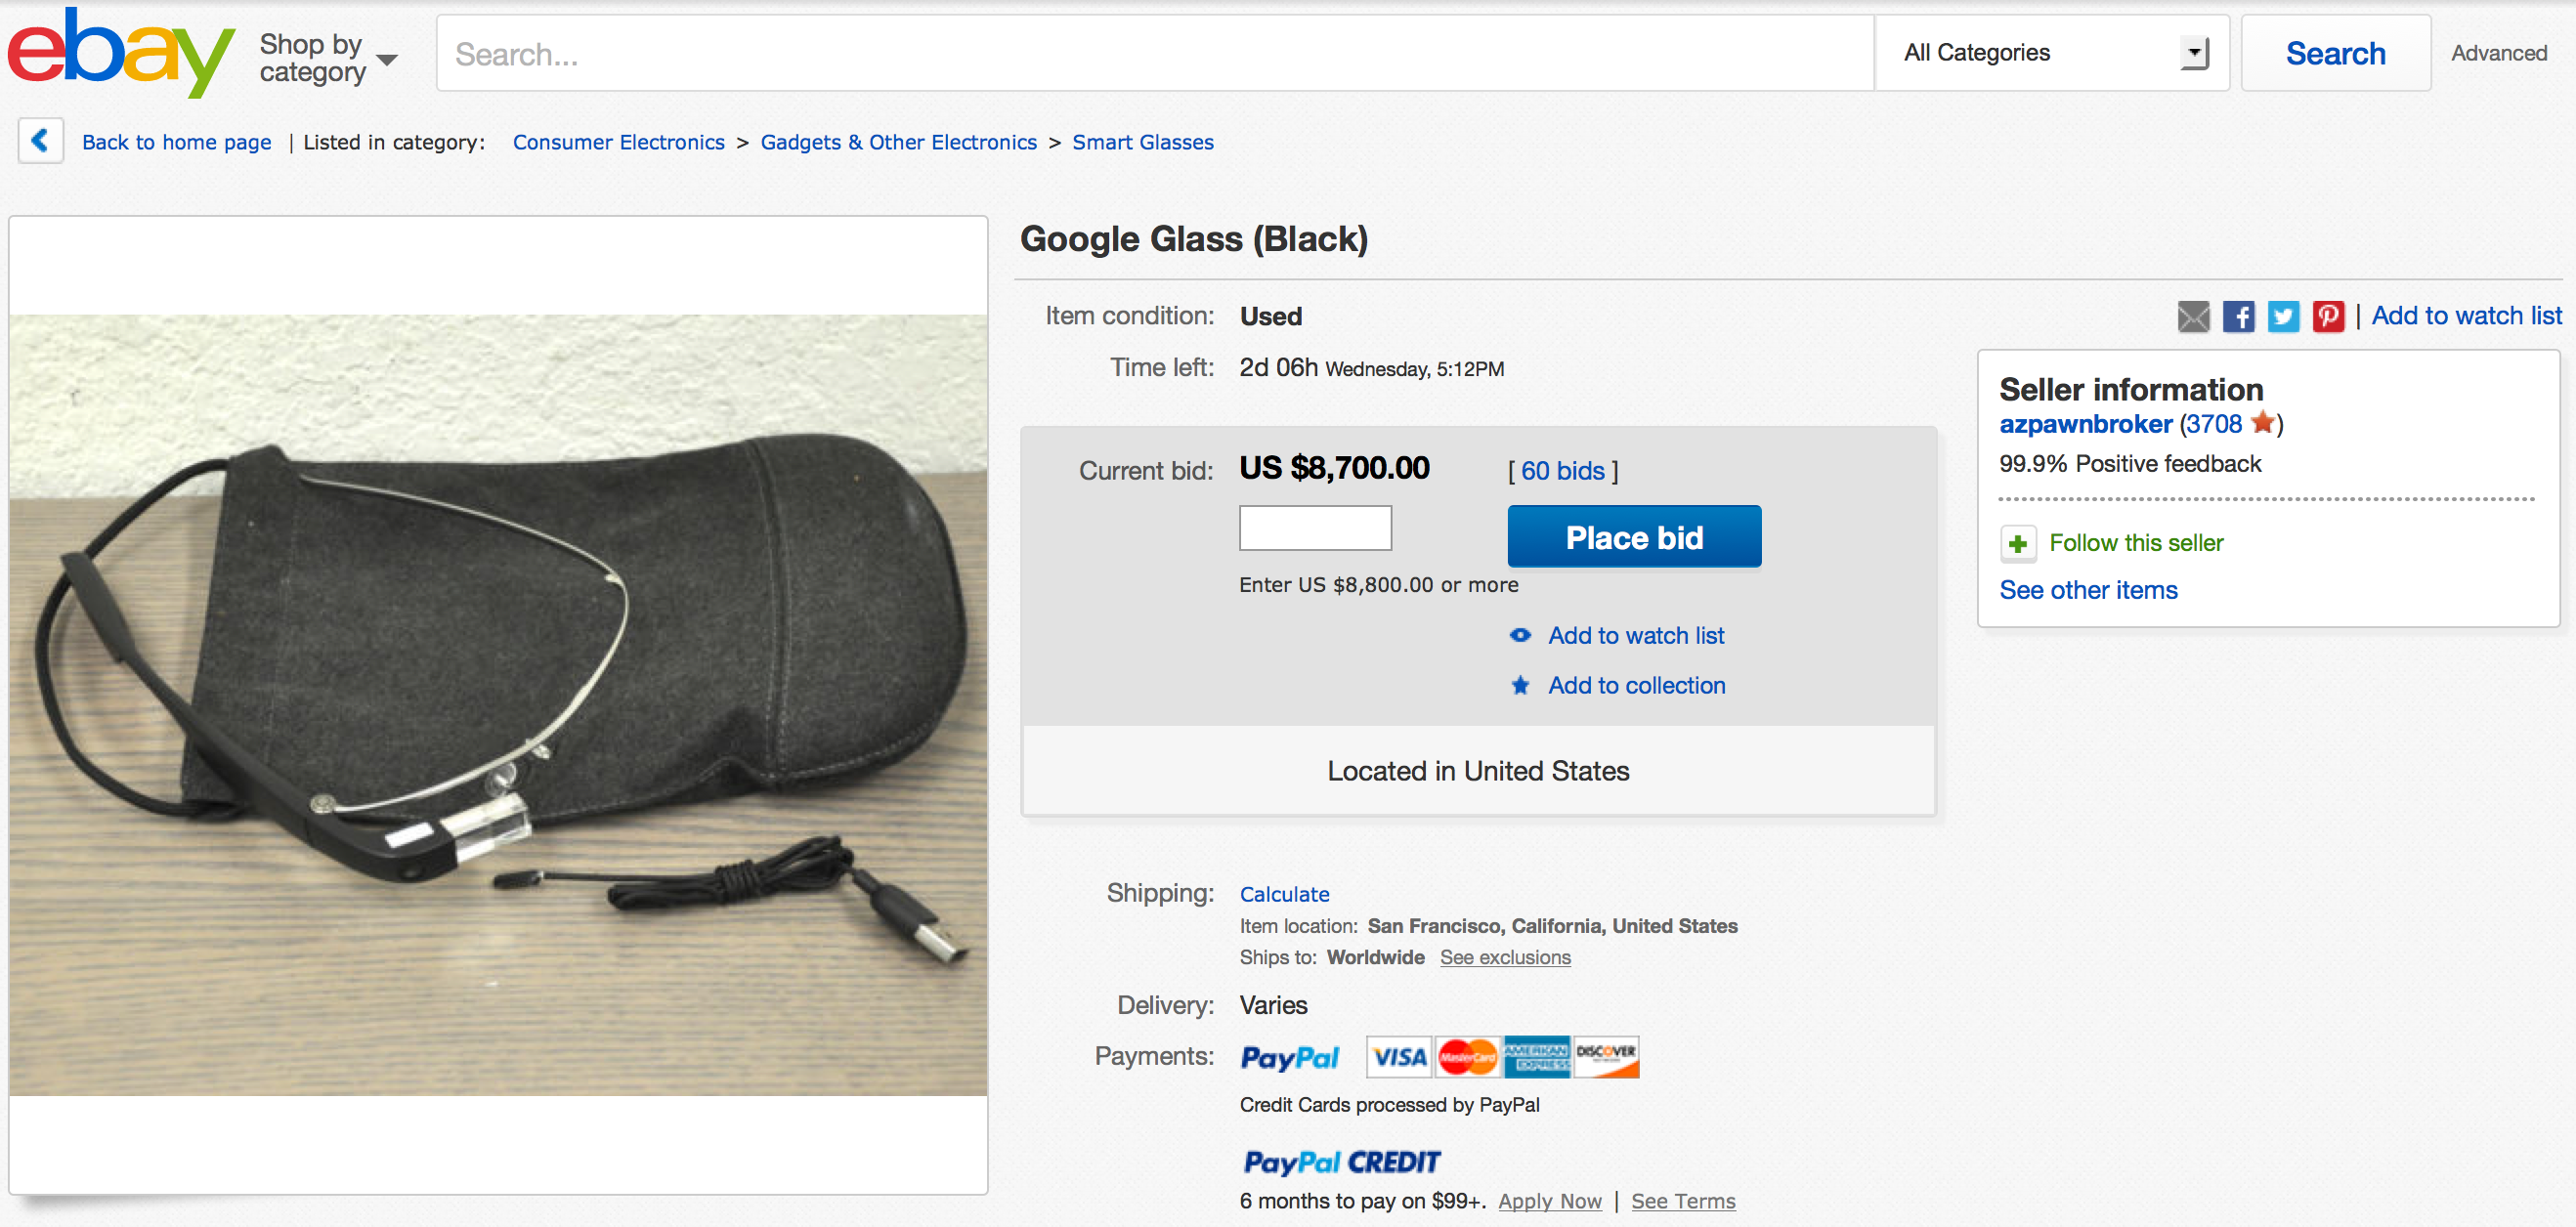 666a9b0354a Google Glass Enterprise Edition pops up on eBay